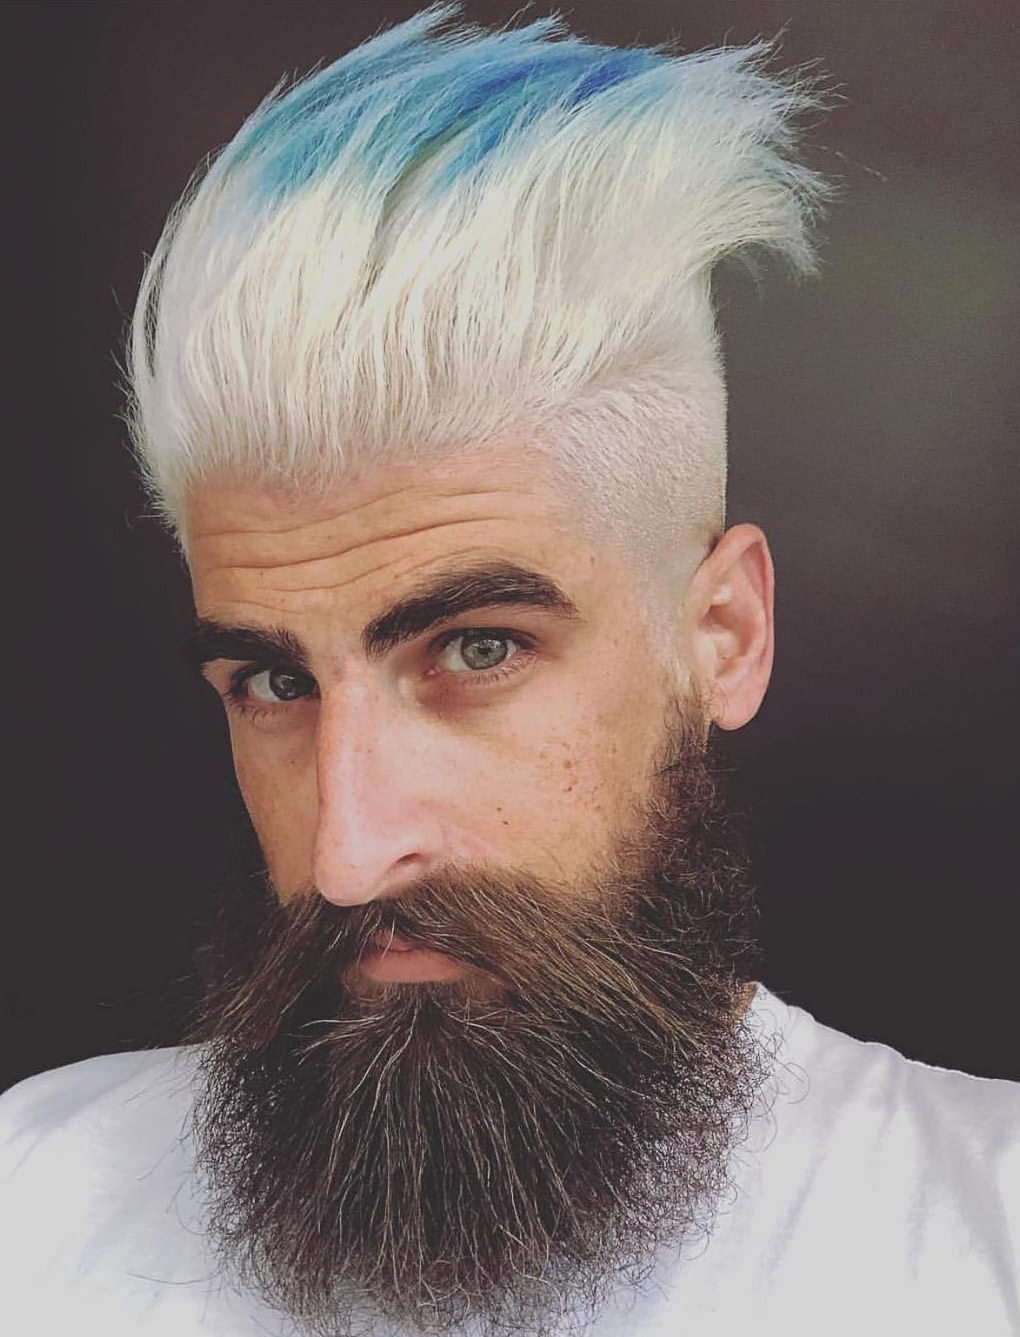 Current Blue Hair Mohawk Hairstyles With Show Off Your Dyed Hair: 10 Colorful Men's Hairstyles (View 7 of 20)